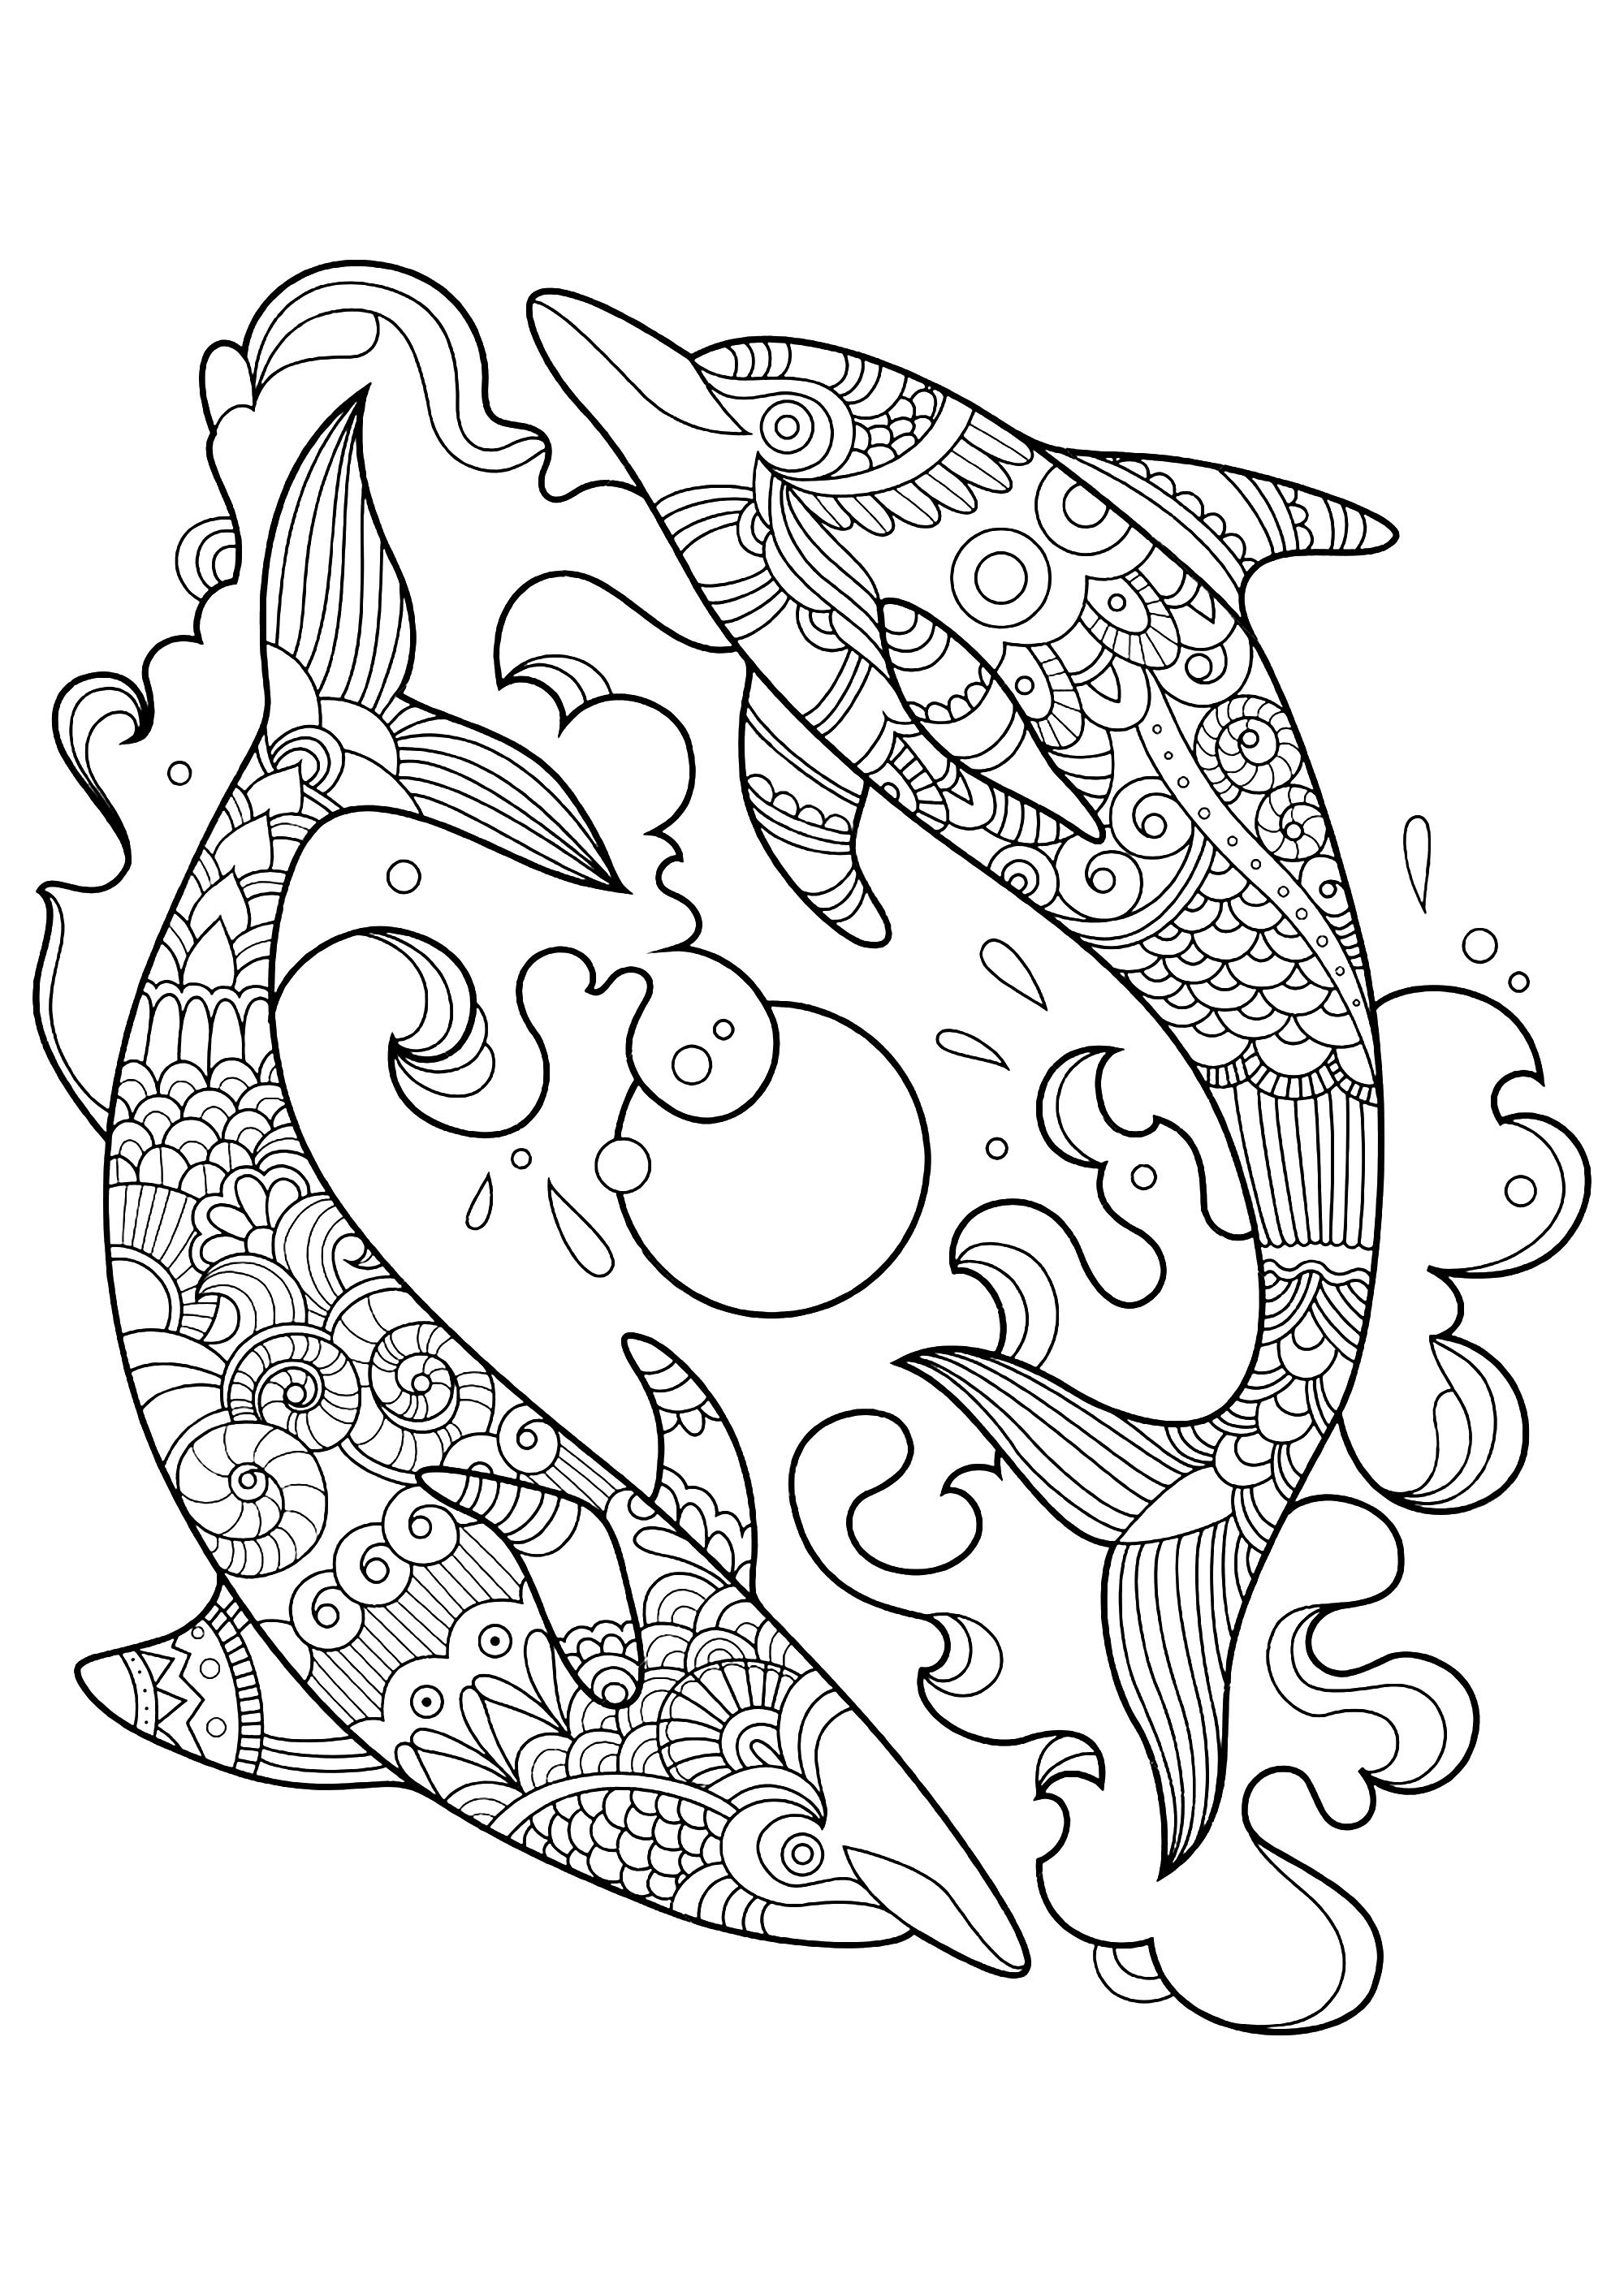 free dolphin coloring pages dolphins to color for children dolphins kids coloring pages coloring pages free dolphin